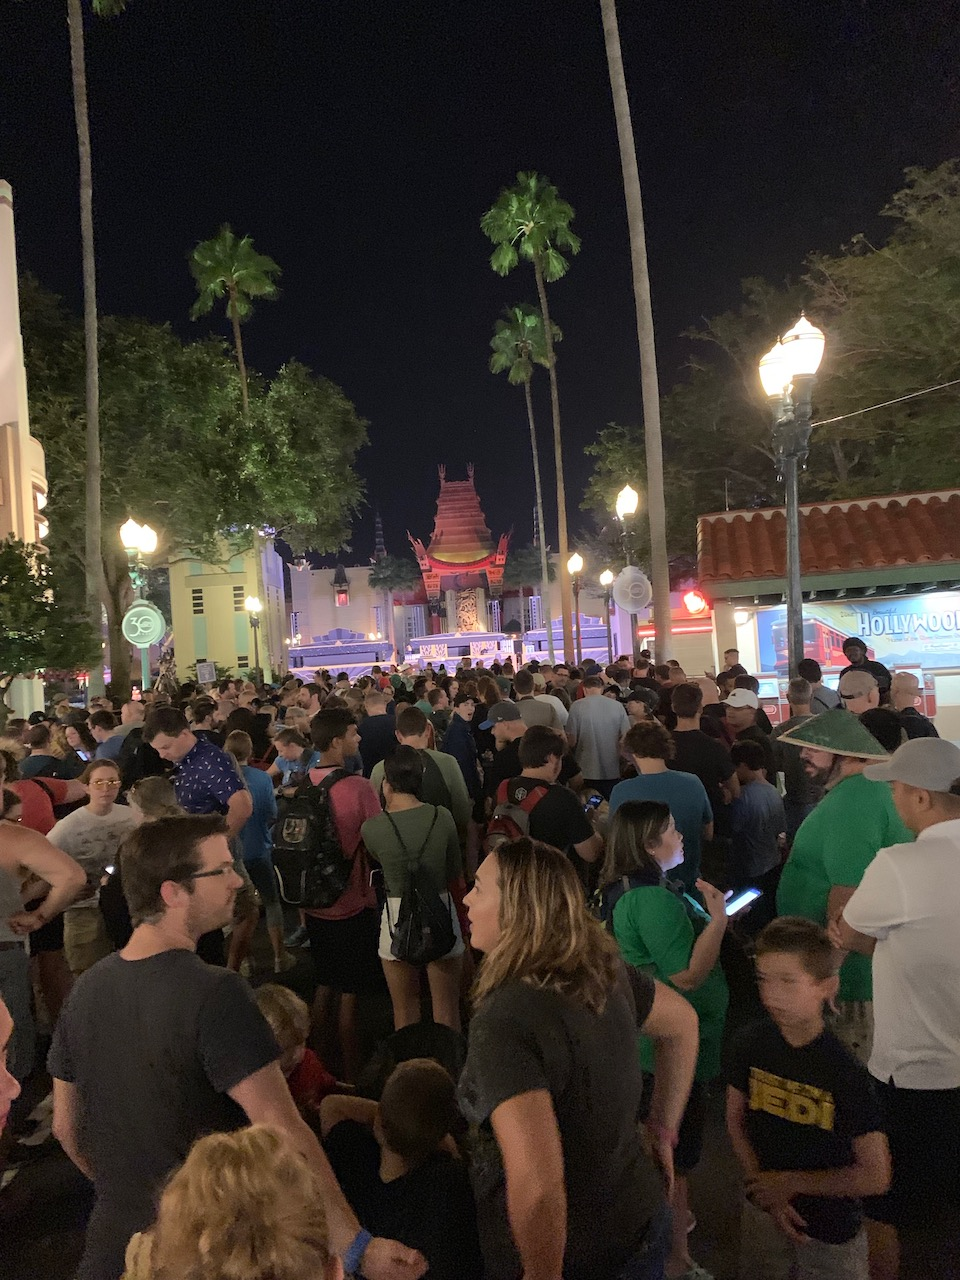 hollywood studios one day itinerary rope drop.jpeg